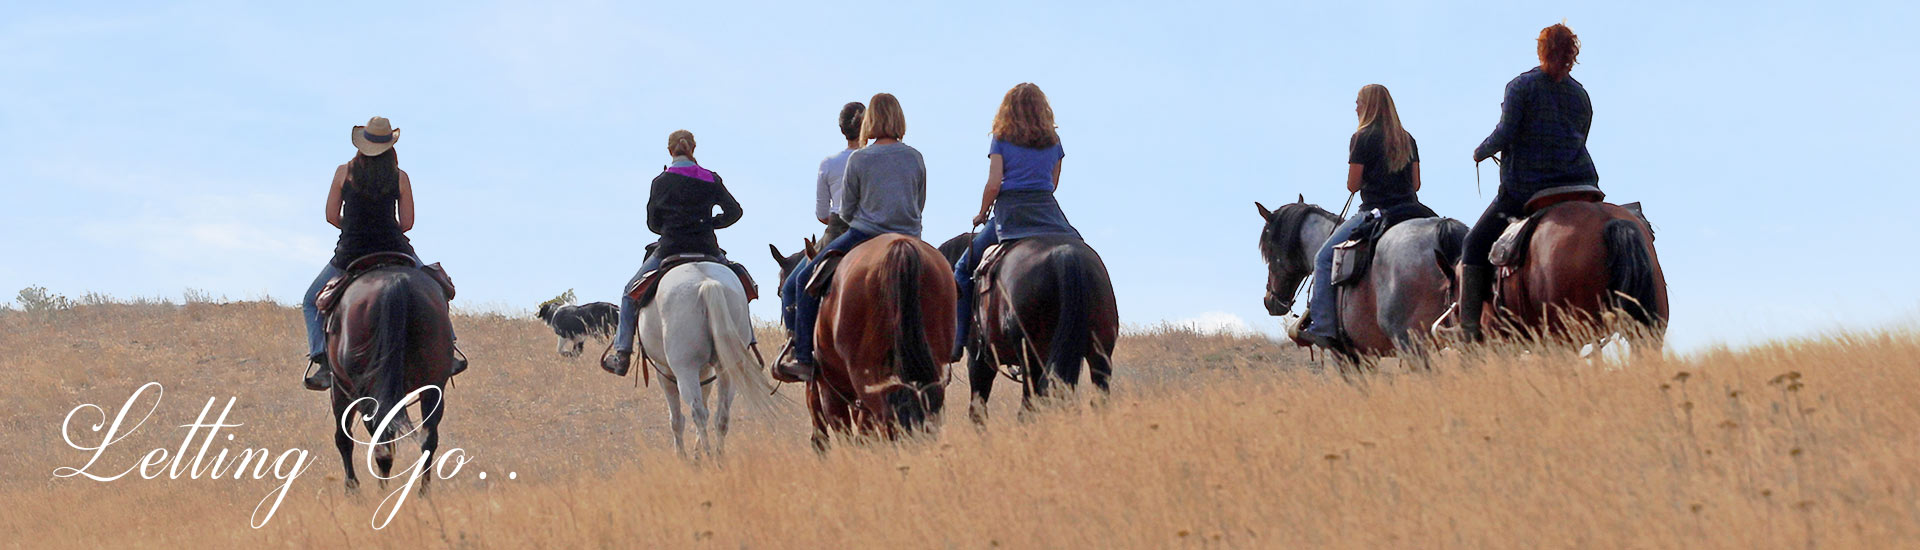 Horseback riding at the Letting Go Retreat